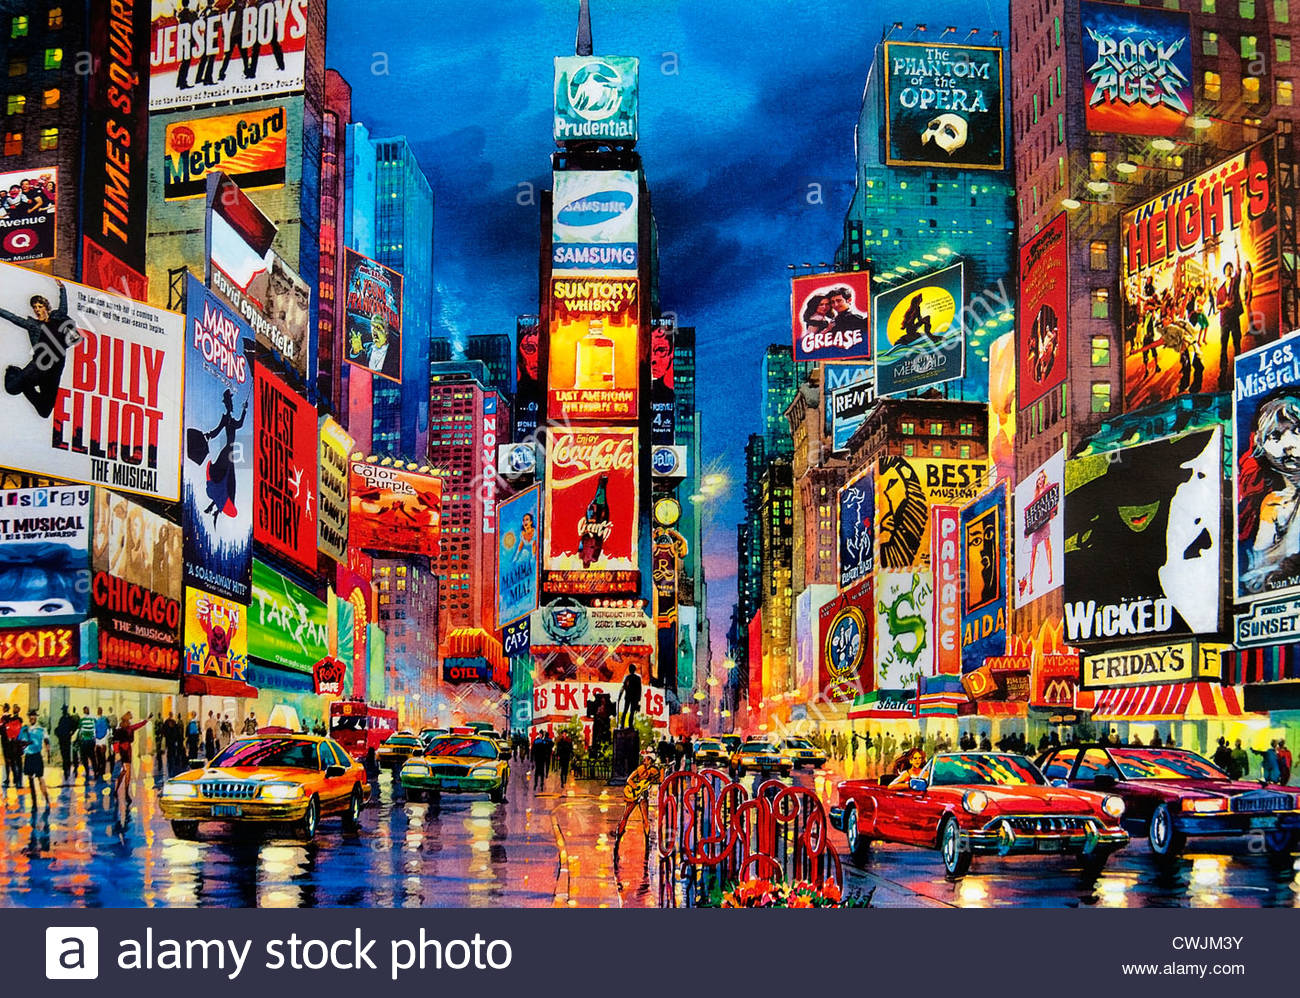 3d Wallpaper City Lights Painting Times Square Broadway New York City Theater